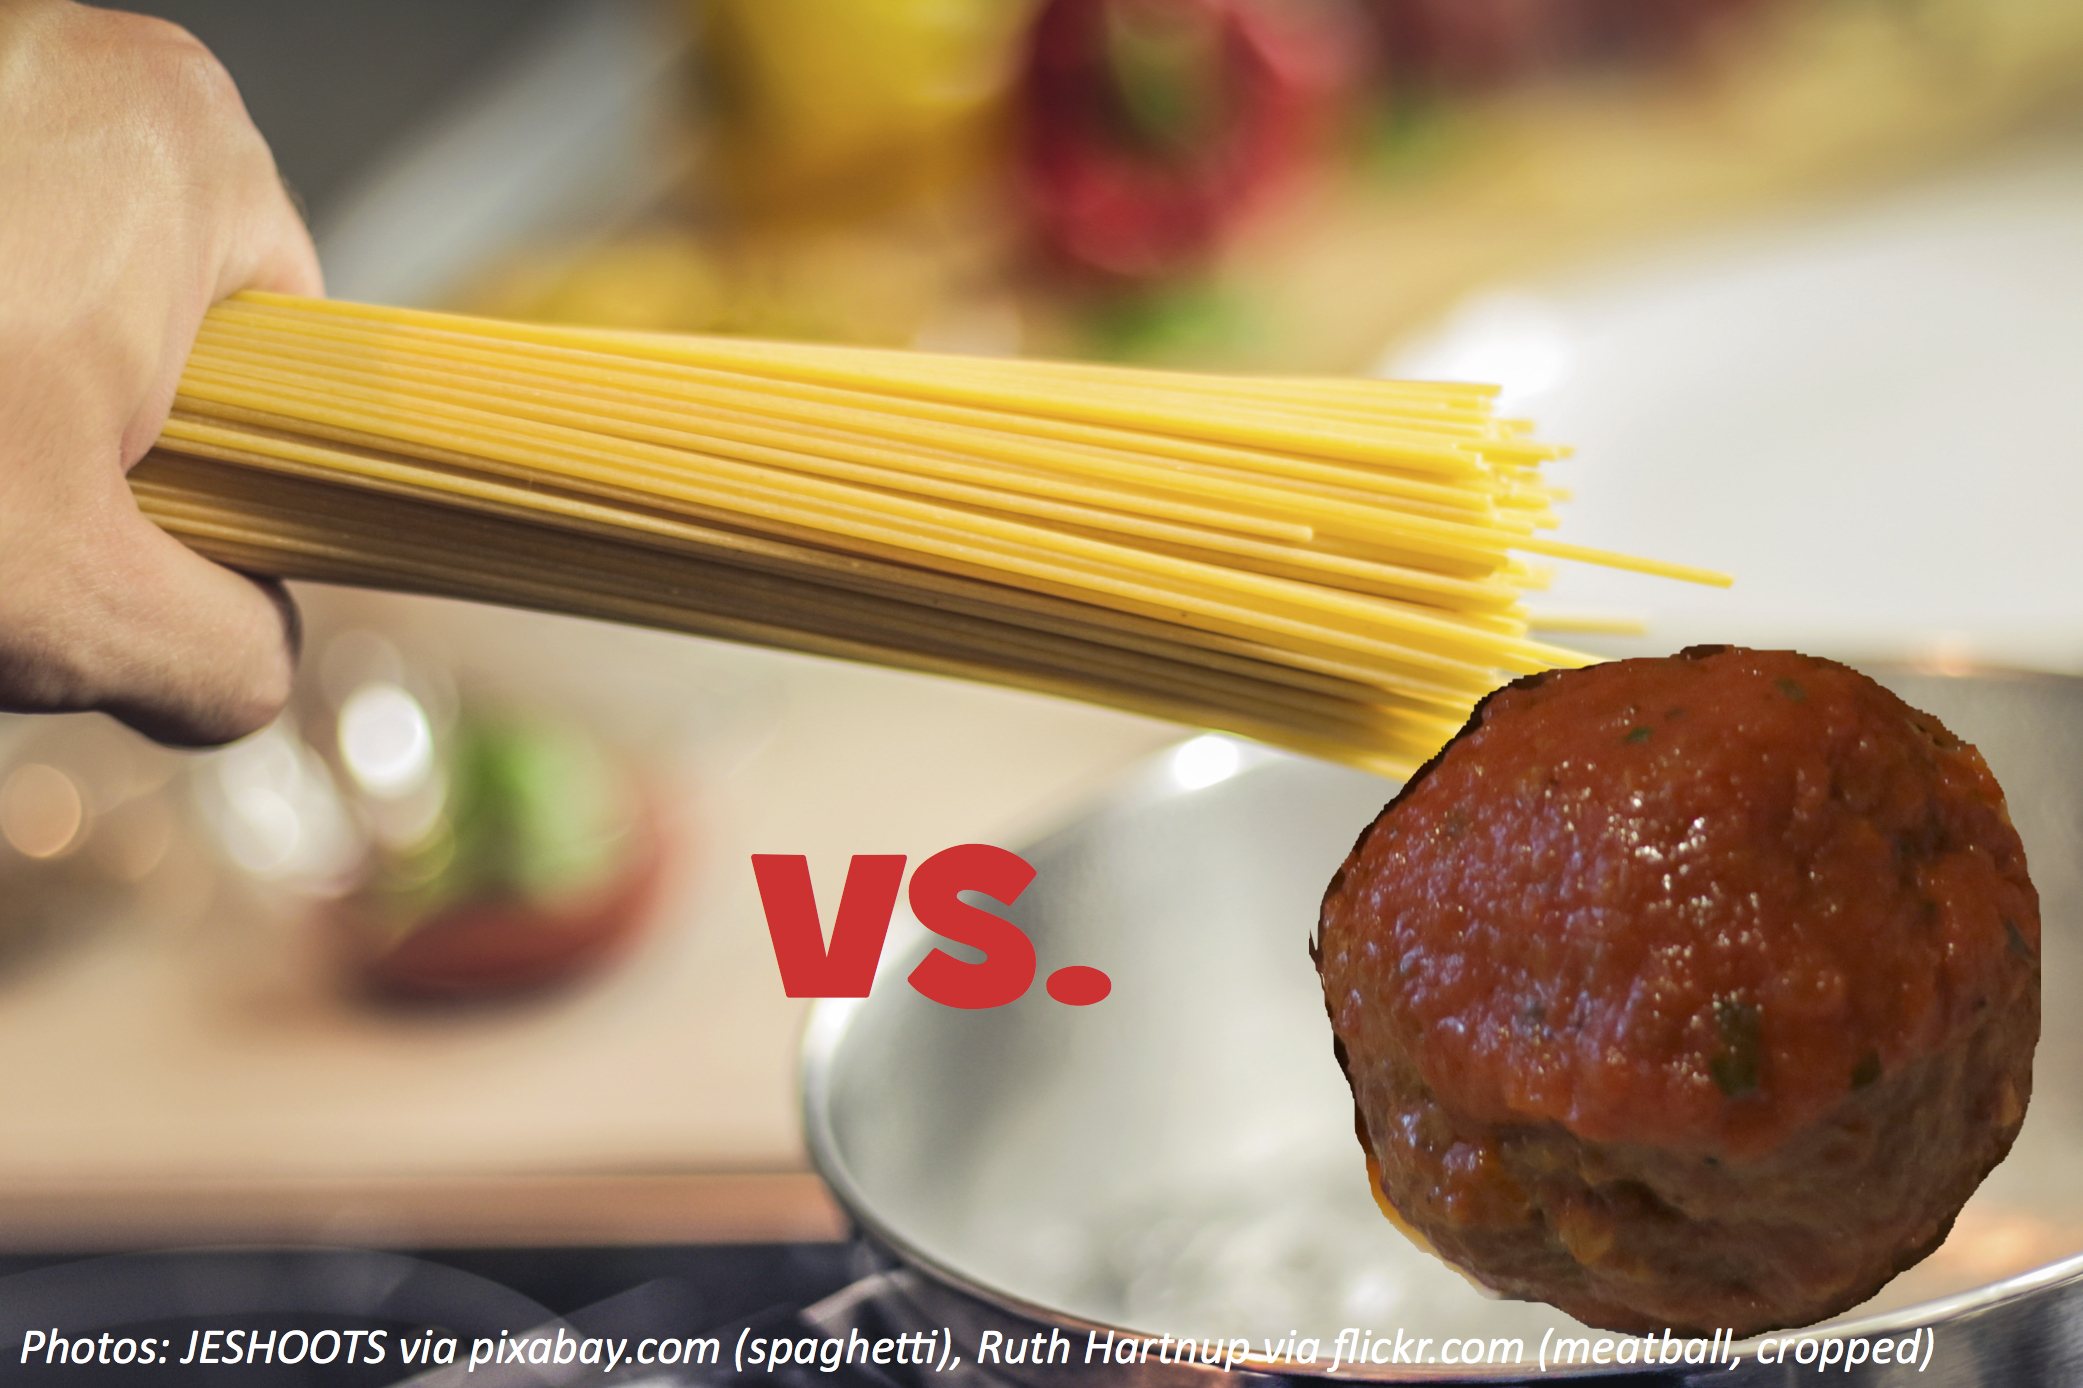 Which One Wins, the Spaghetti or the Meatball?